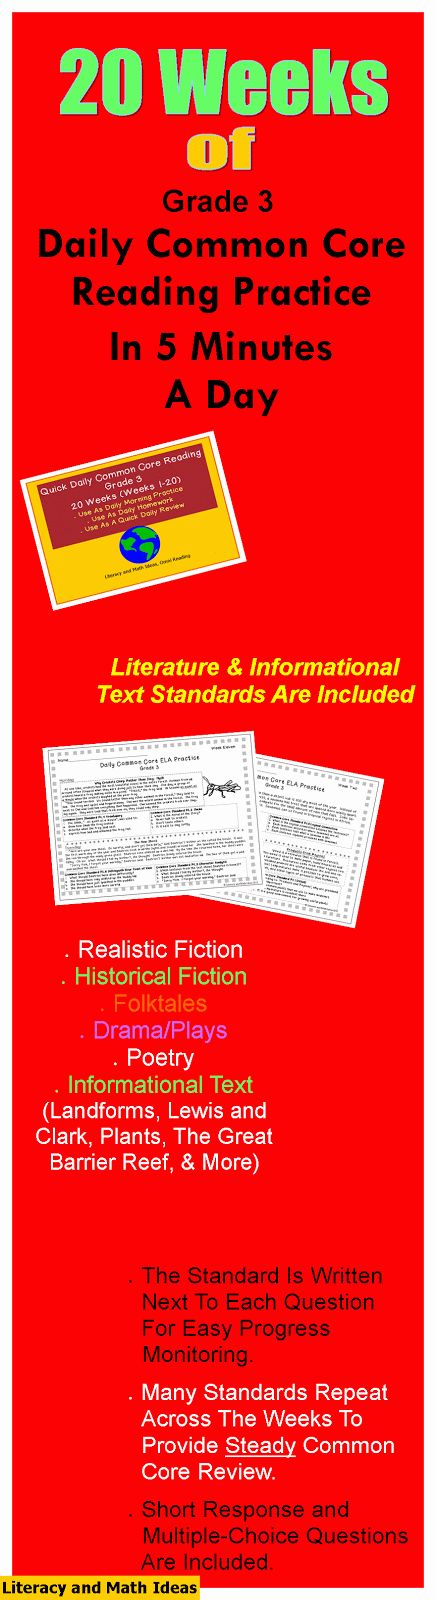 Literacy & Math Ideas: 20 Weeks of Grade 3 Daily Common Core Reading Practice. Realistic fiction, historical fiction, informational text and more are all included. Most standards repeat across the weeks to provide steady Common Core practice. Excellent as morning practice or as Common Core homework. $